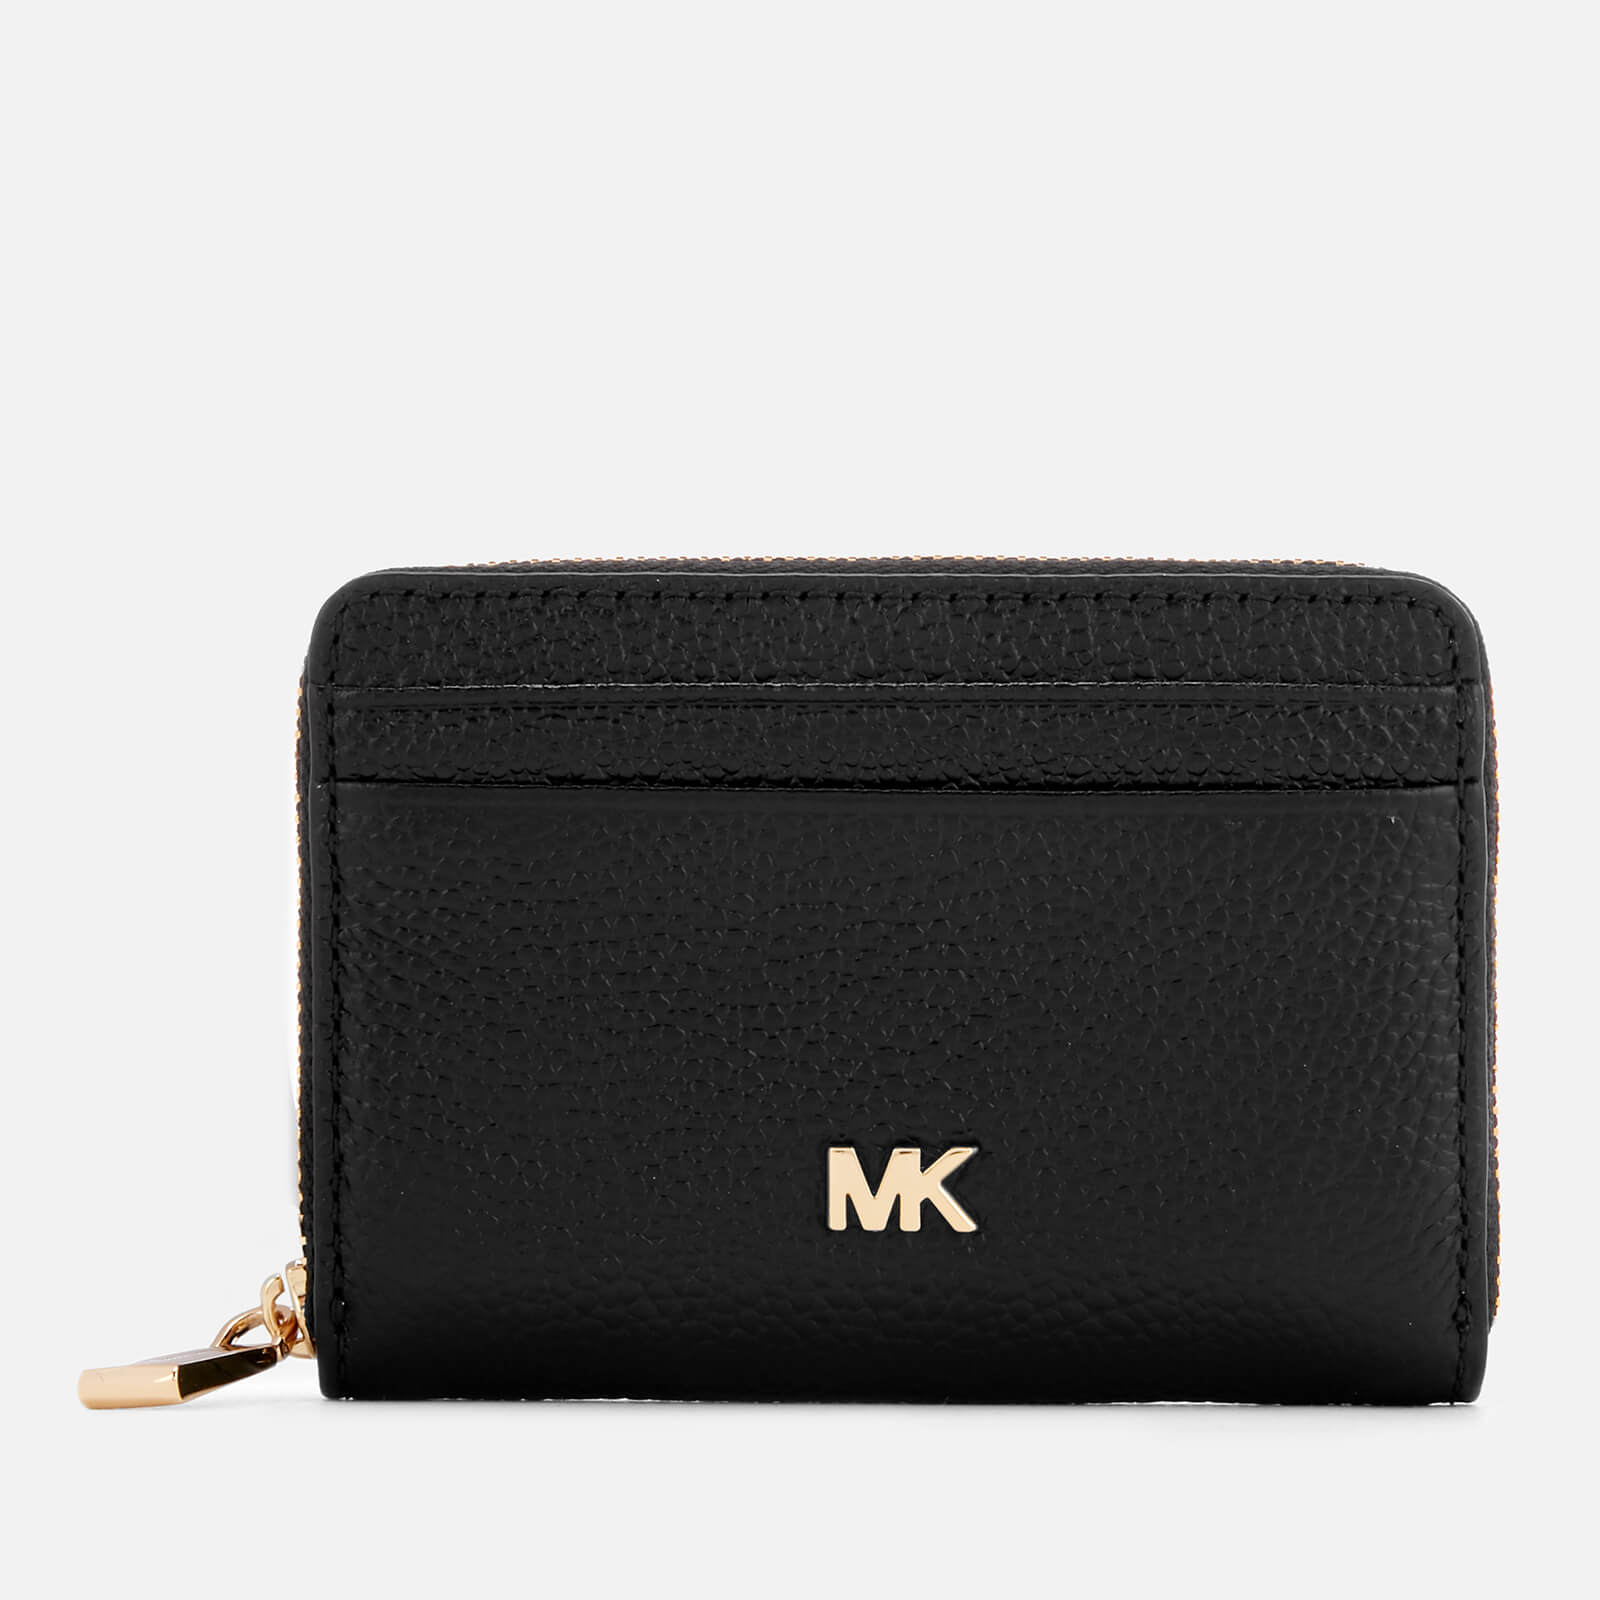 5e1a12064714 MICHAEL MICHAEL KORS Women s Money Pieces Coin Card Case - Black - Free UK  Delivery over £50